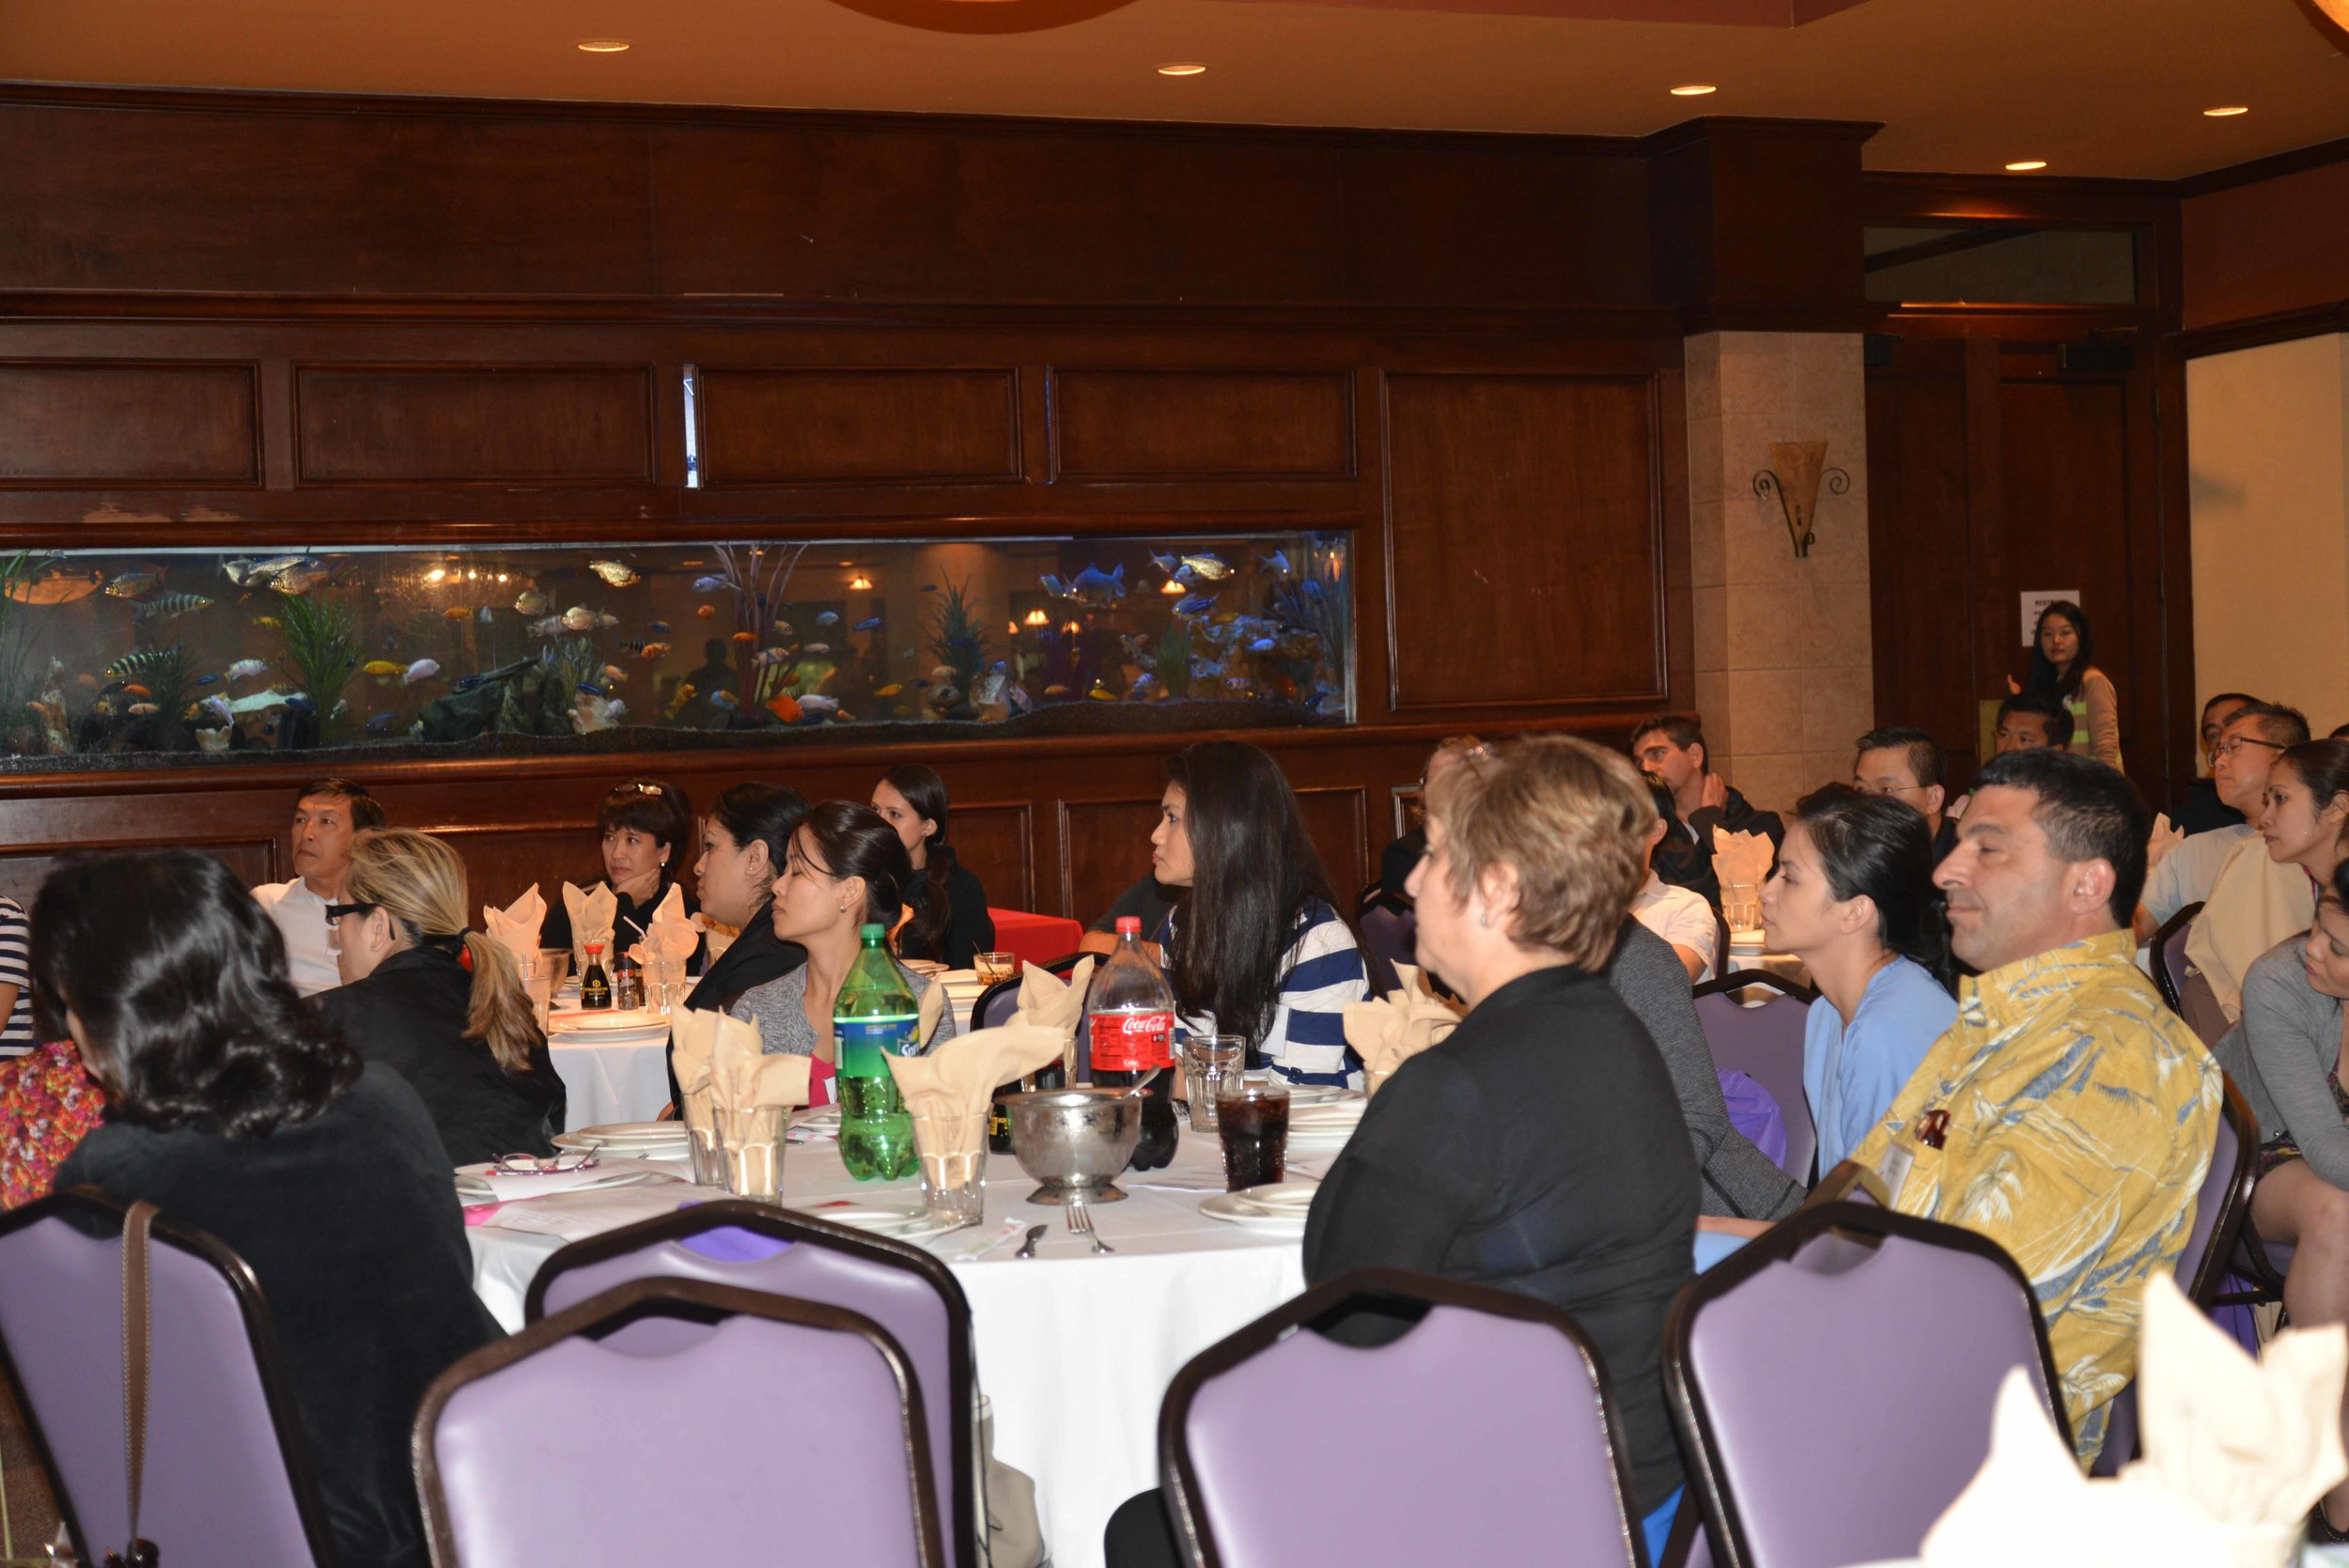 Dentists from across Houston listen as Dr. Reece lectures; prior to enjoying a 7 course meal at the famous Kim Son Restaurant.